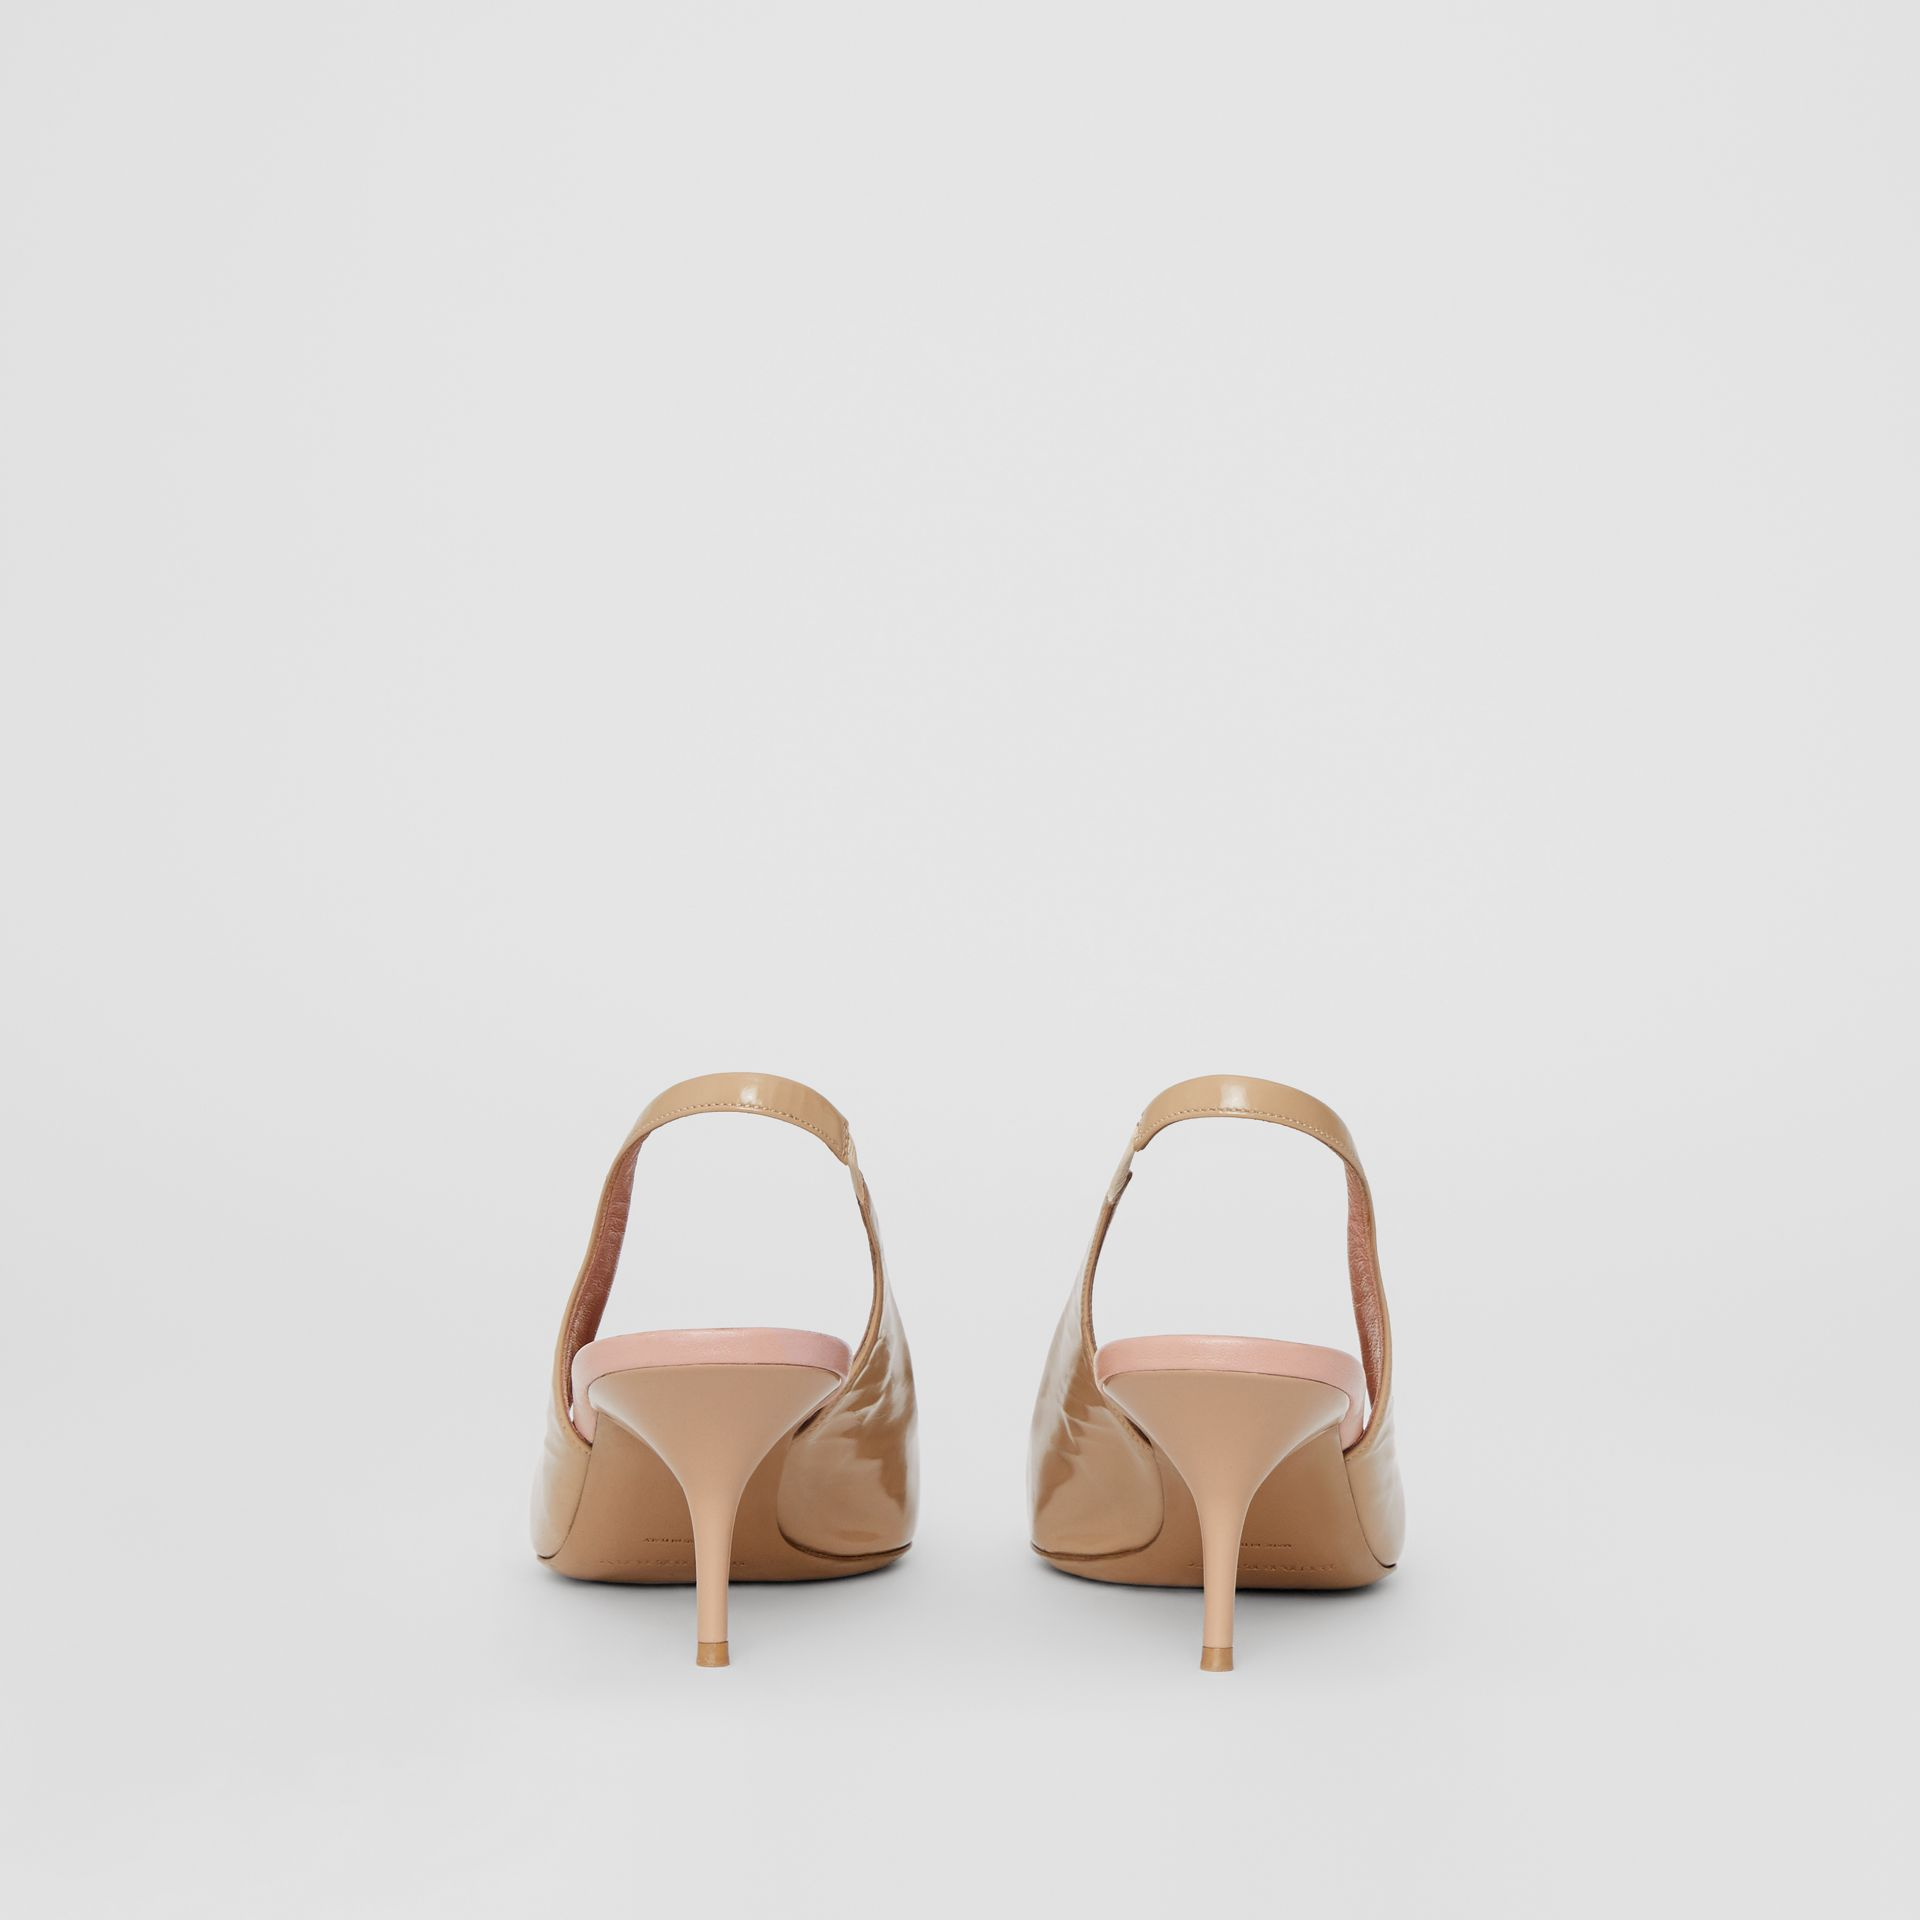 The Leather D-ring Slingback Pump in Nude Blush - Women | Burberry United Kingdom - gallery image 4